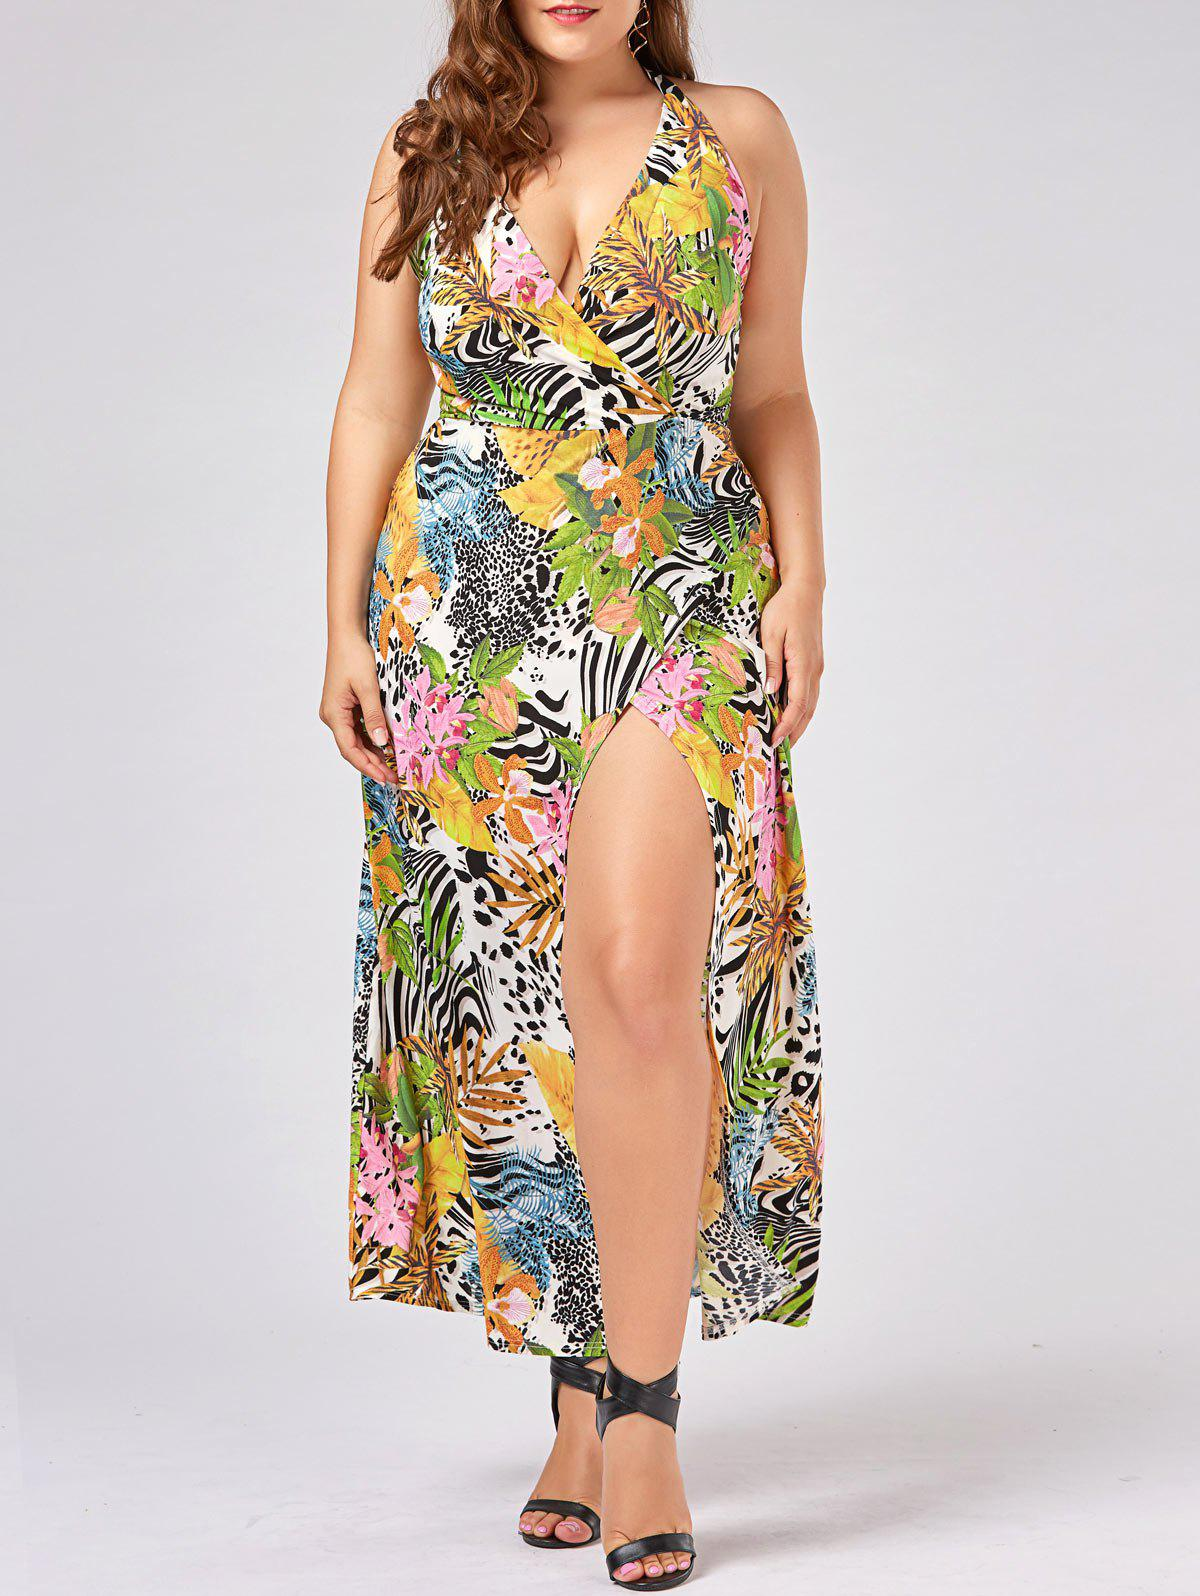 64% OFF] Halter Neck High Slit Plus Size Hawaiian Dress | Rosegal